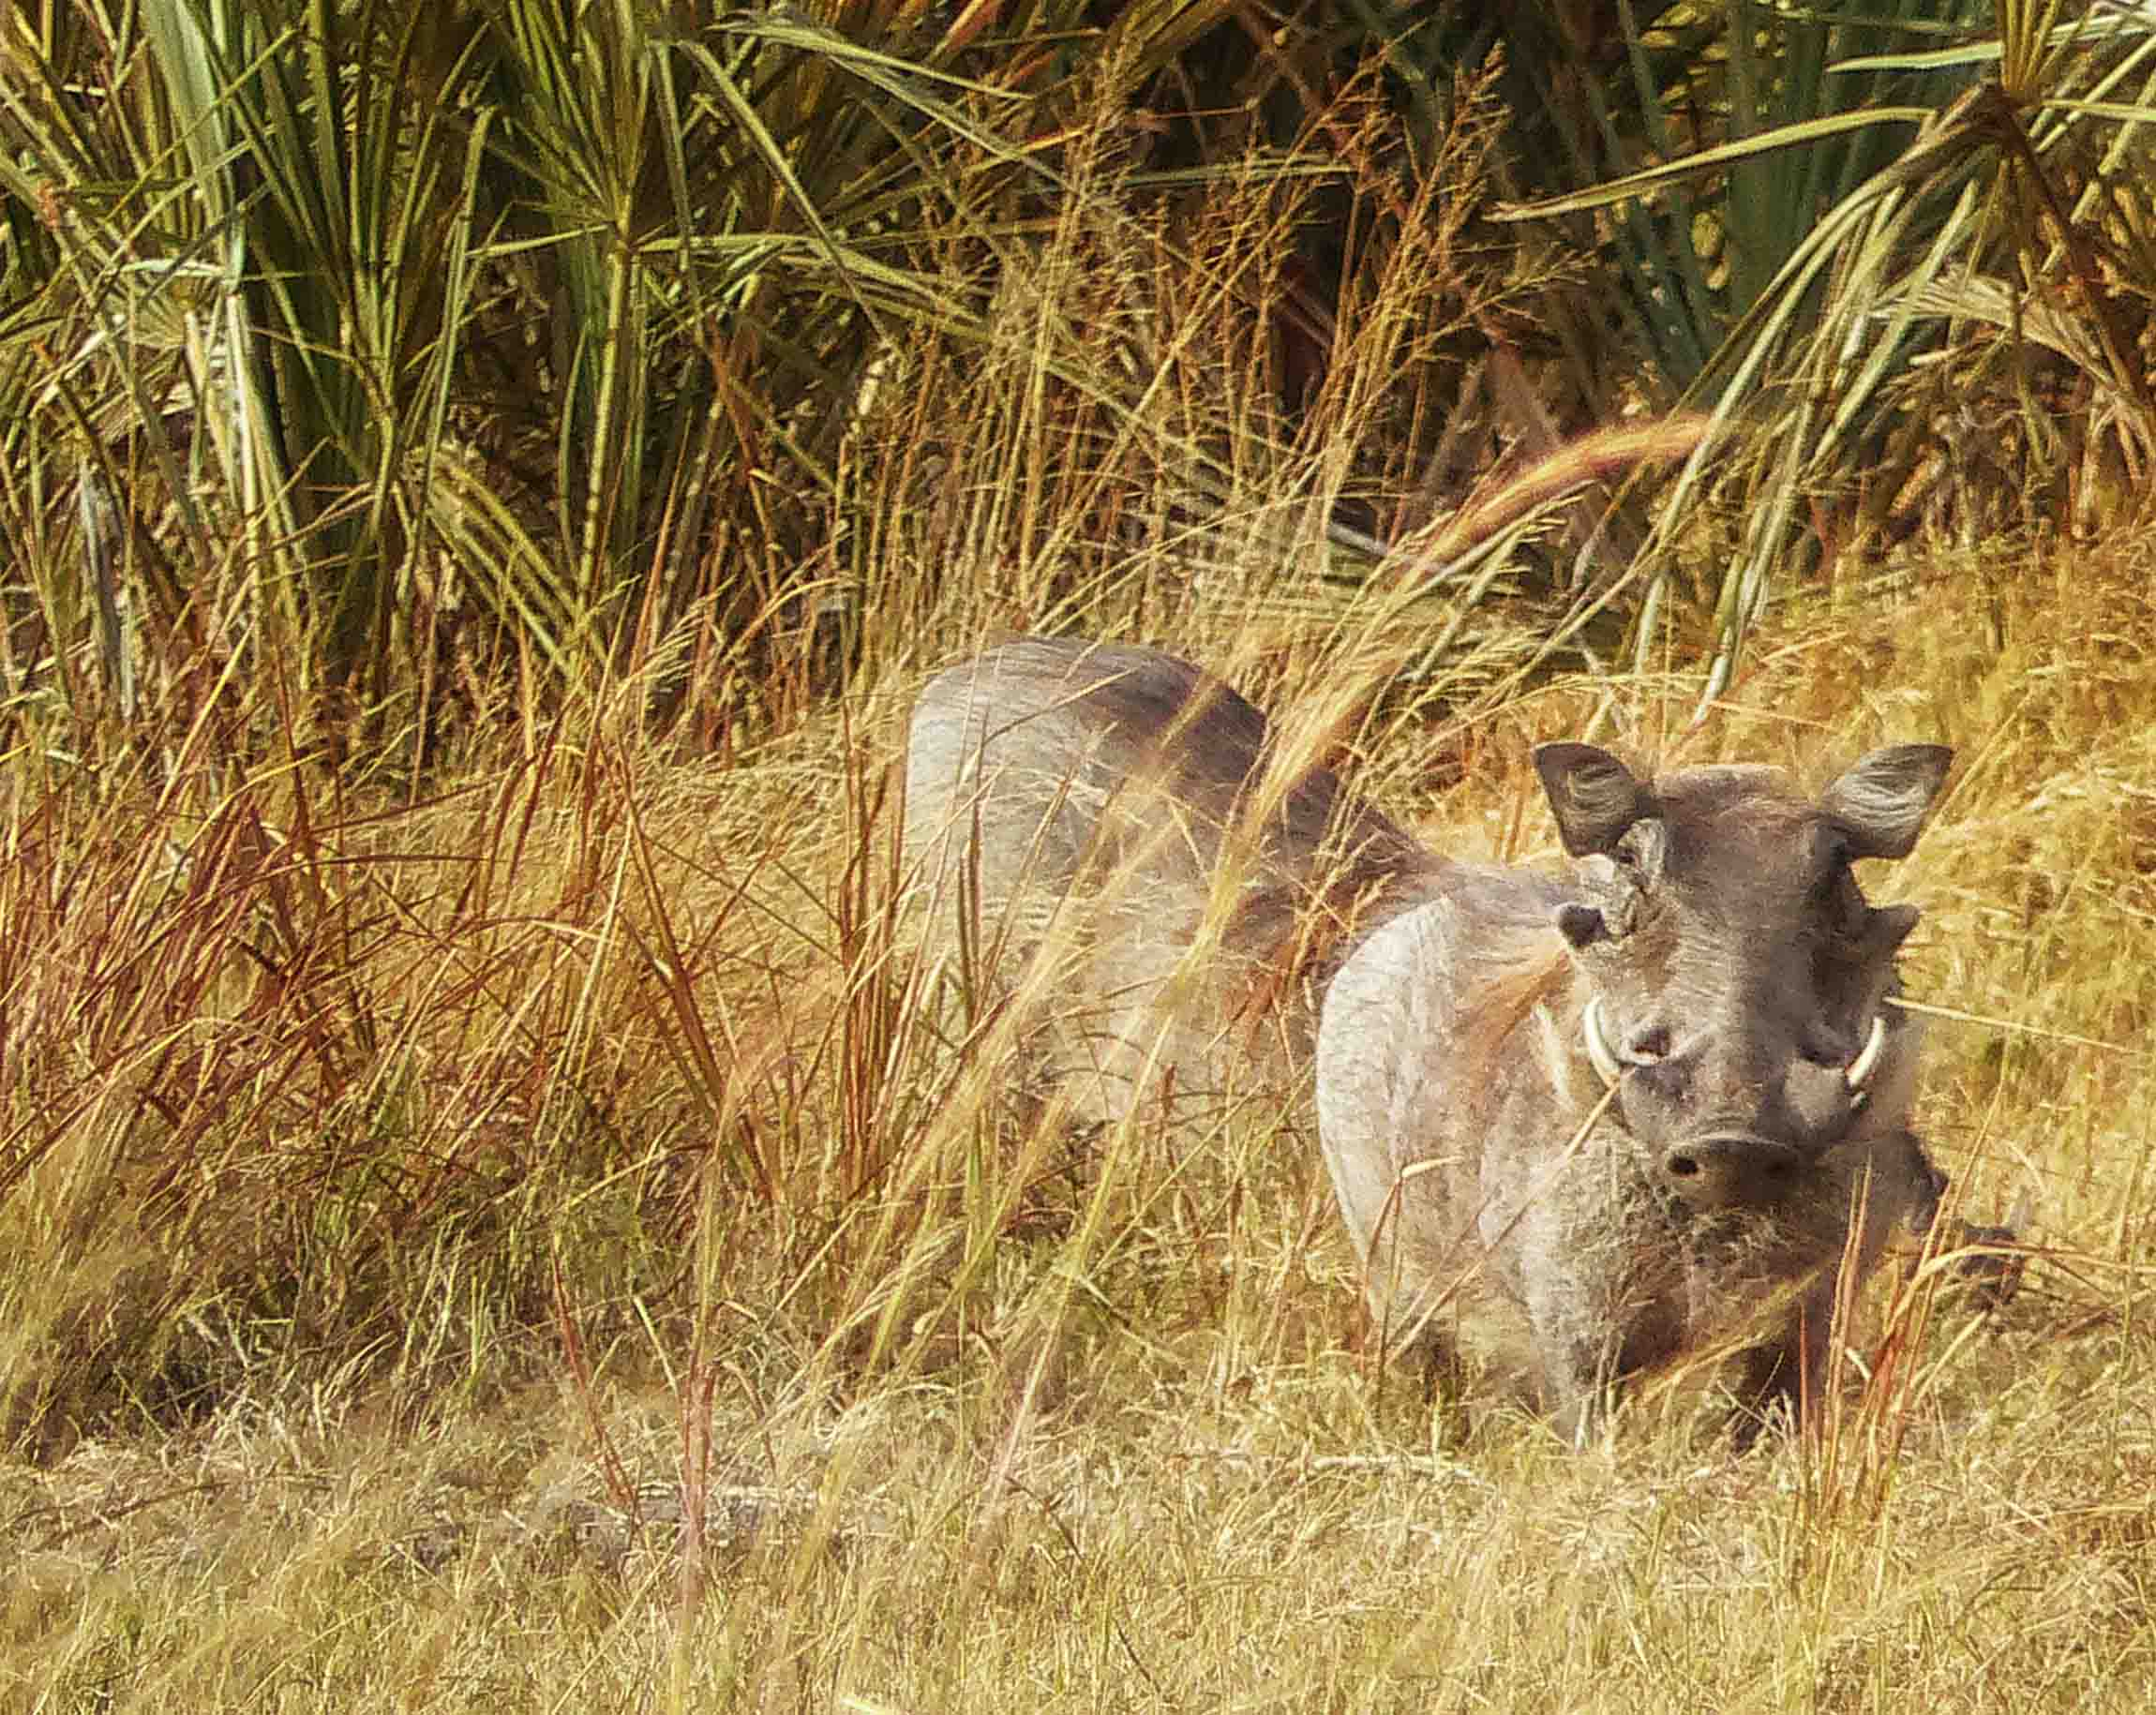 Two warthogs in long grass